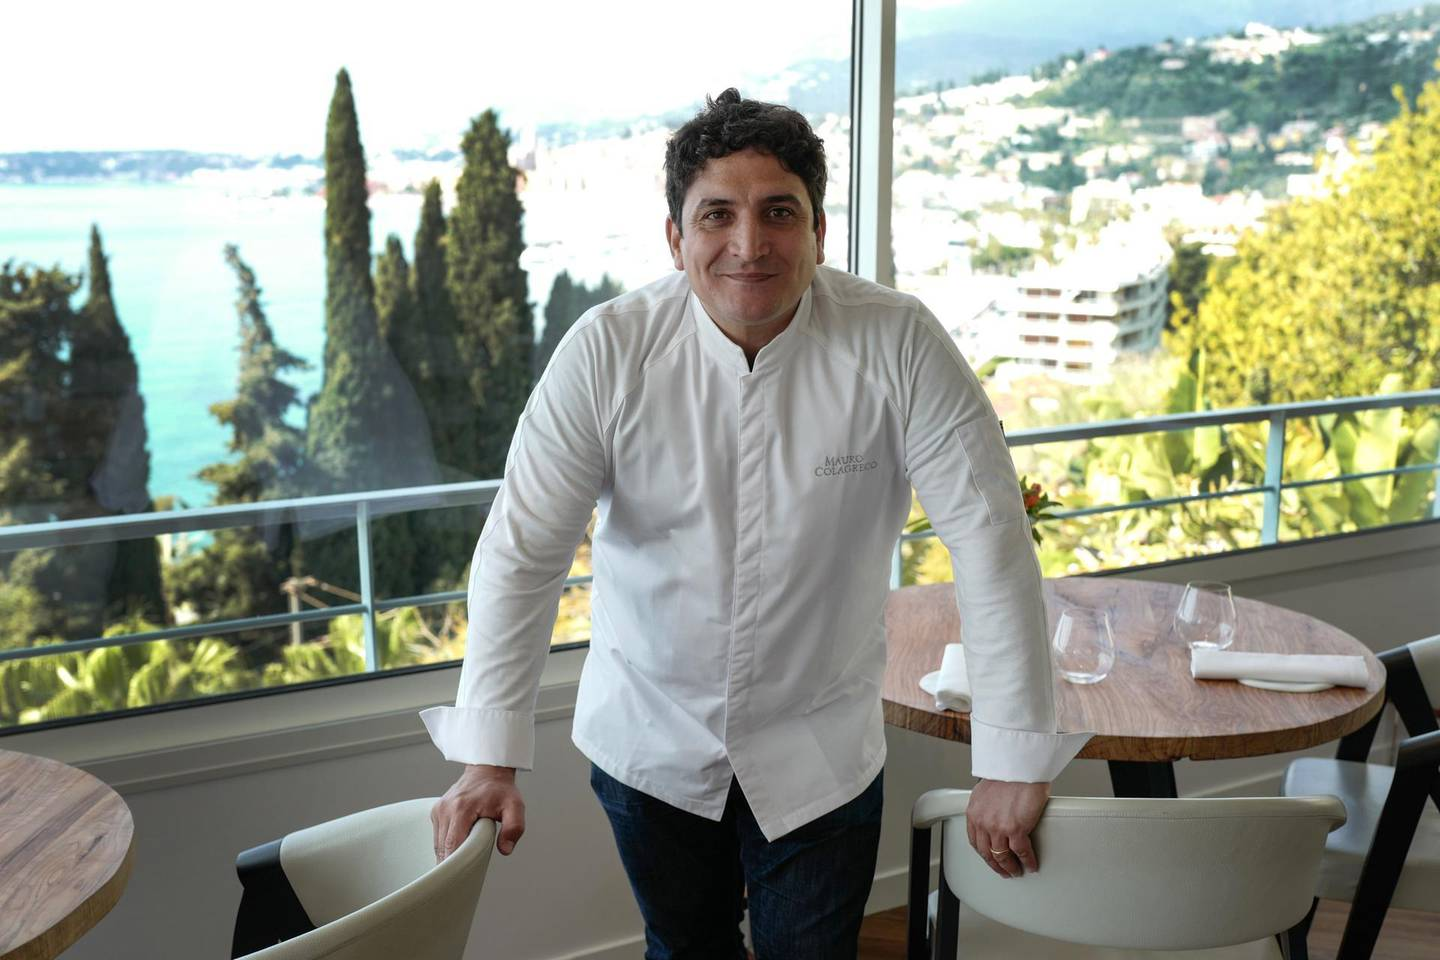 """(FILES) In this file photo taken on April 13, 2019 Italian-Argentinian chef Mauro Colagreco poses in his """"Mirazur"""" restaurant on the French riviera city of Menton after being awarded with a third star in the Guide Michelin. Colagreco was elected """"best chief of the year"""" by his French pairs on September 23, 2019. / AFP / VALERY HACHE"""